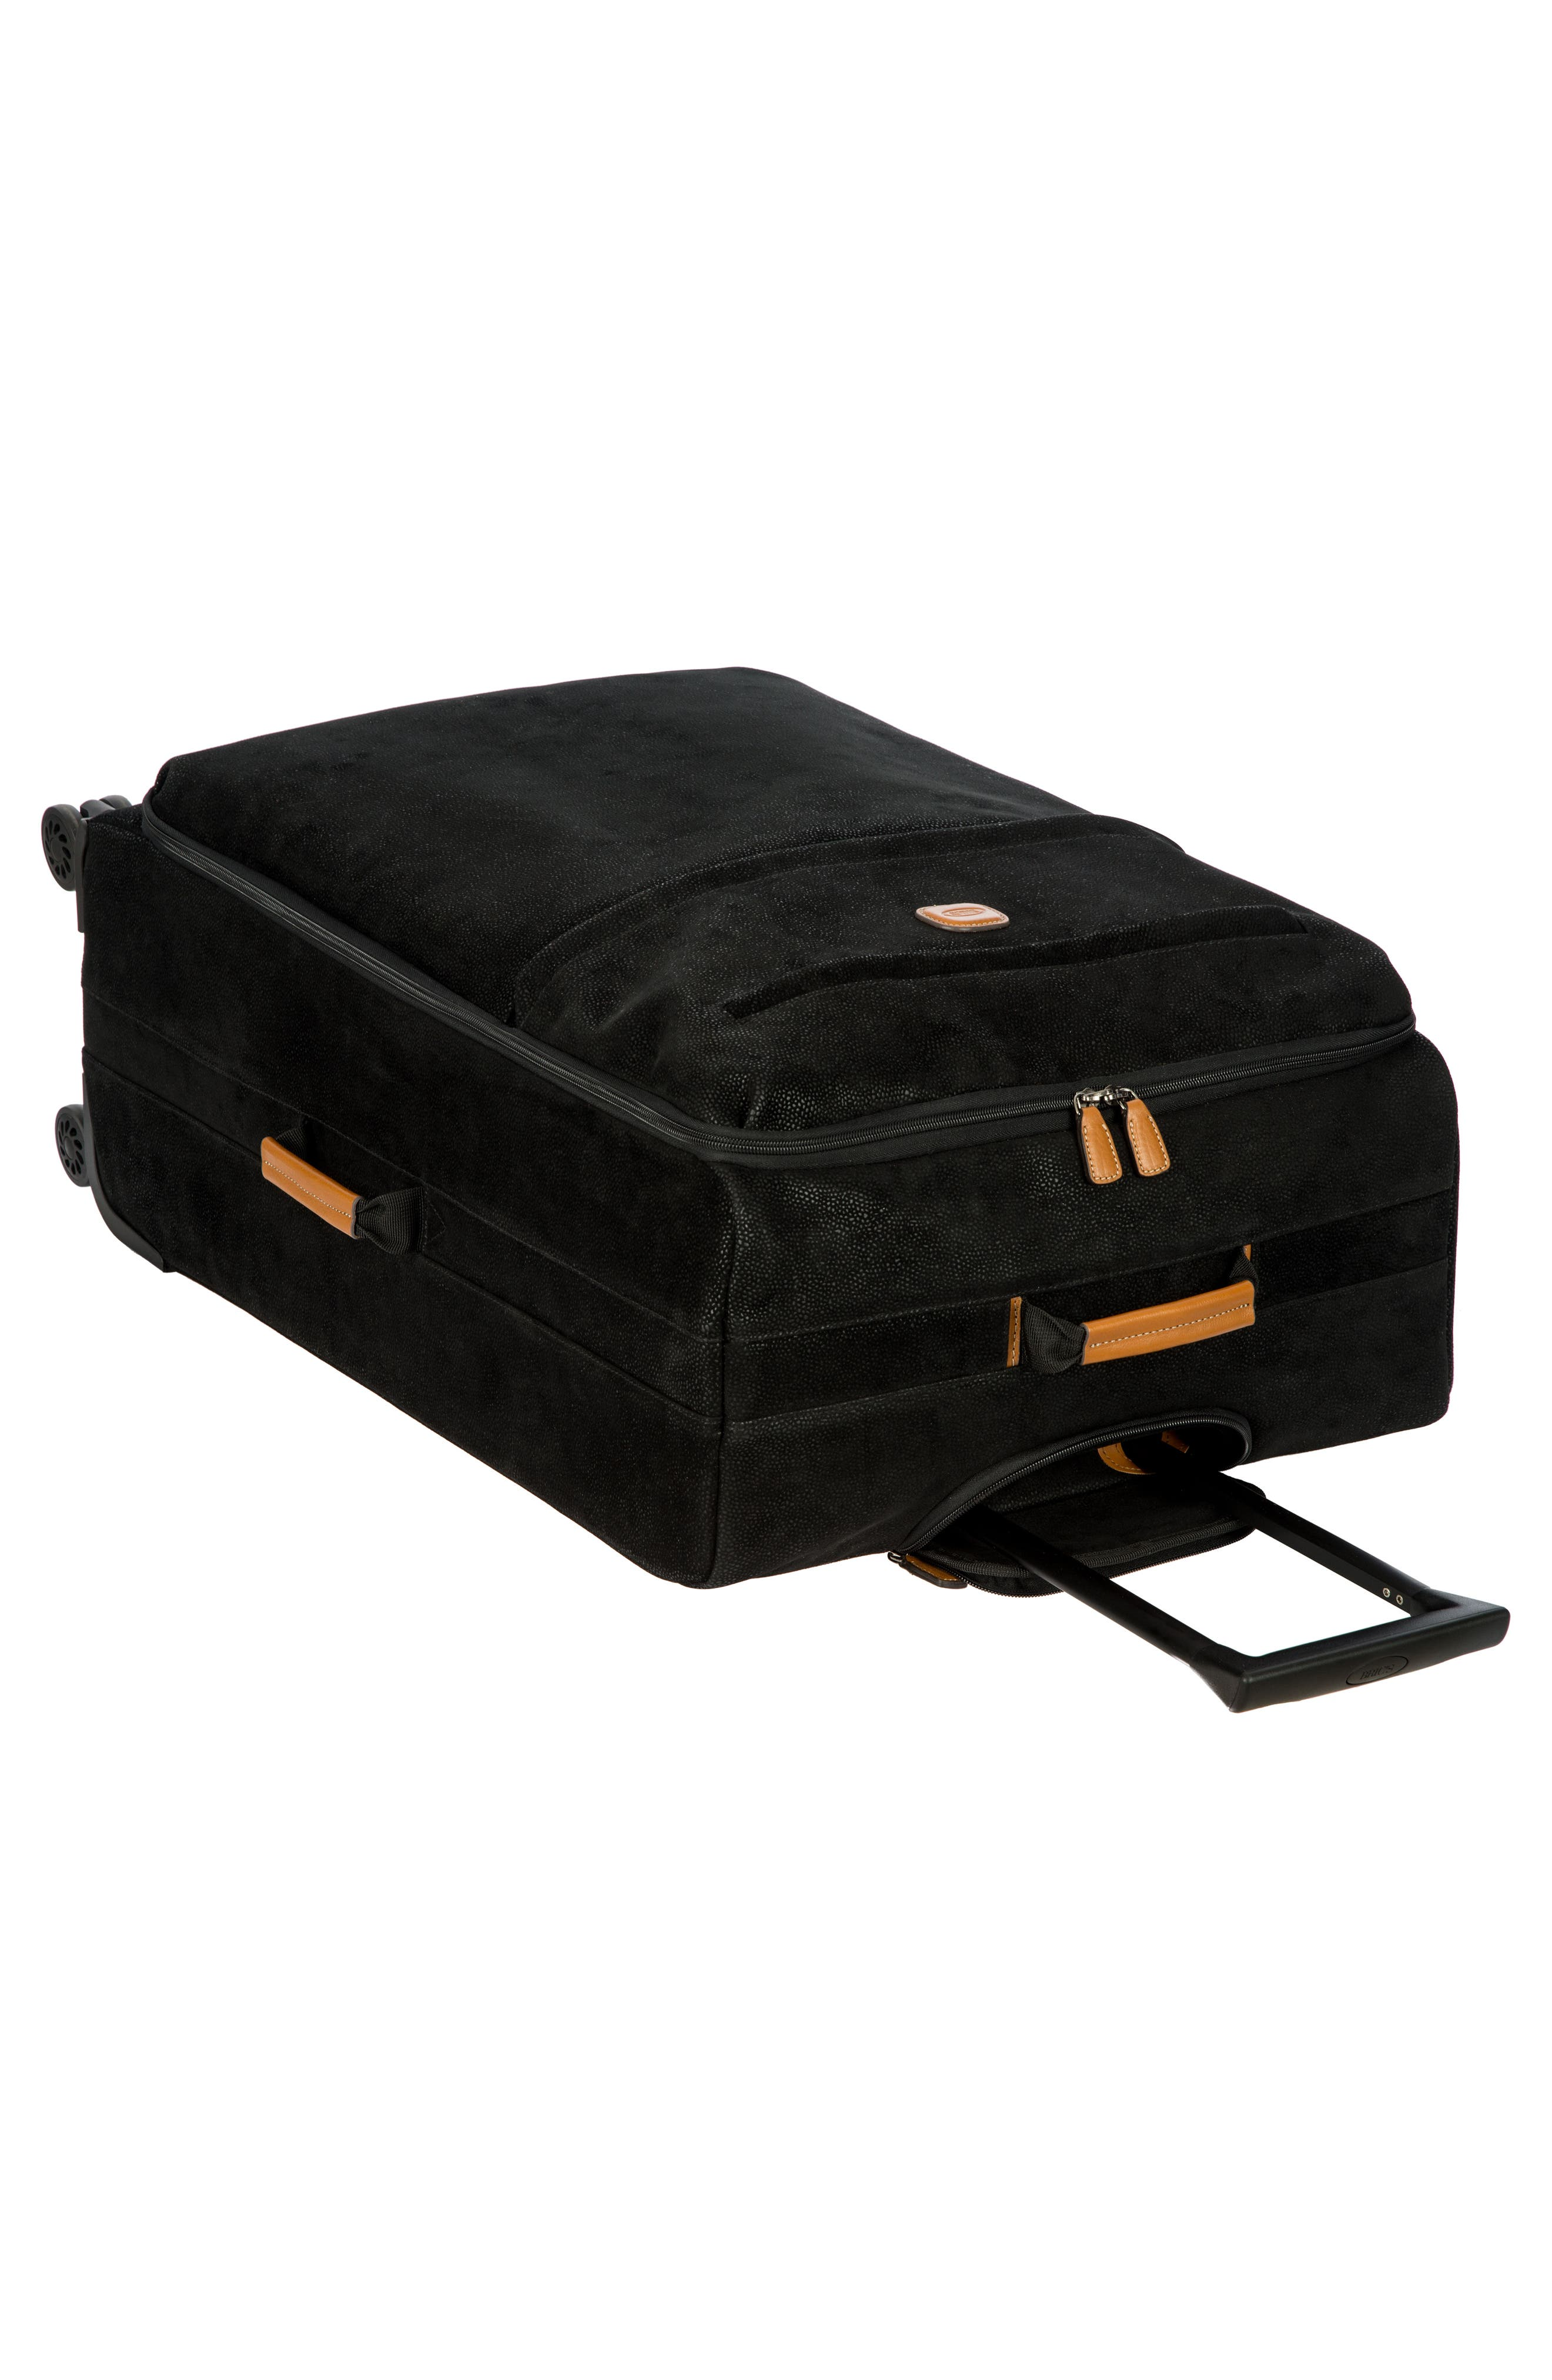 LIFE Collection 30-Inch Wheeled Suitcase,                             Alternate thumbnail 6, color,                             007